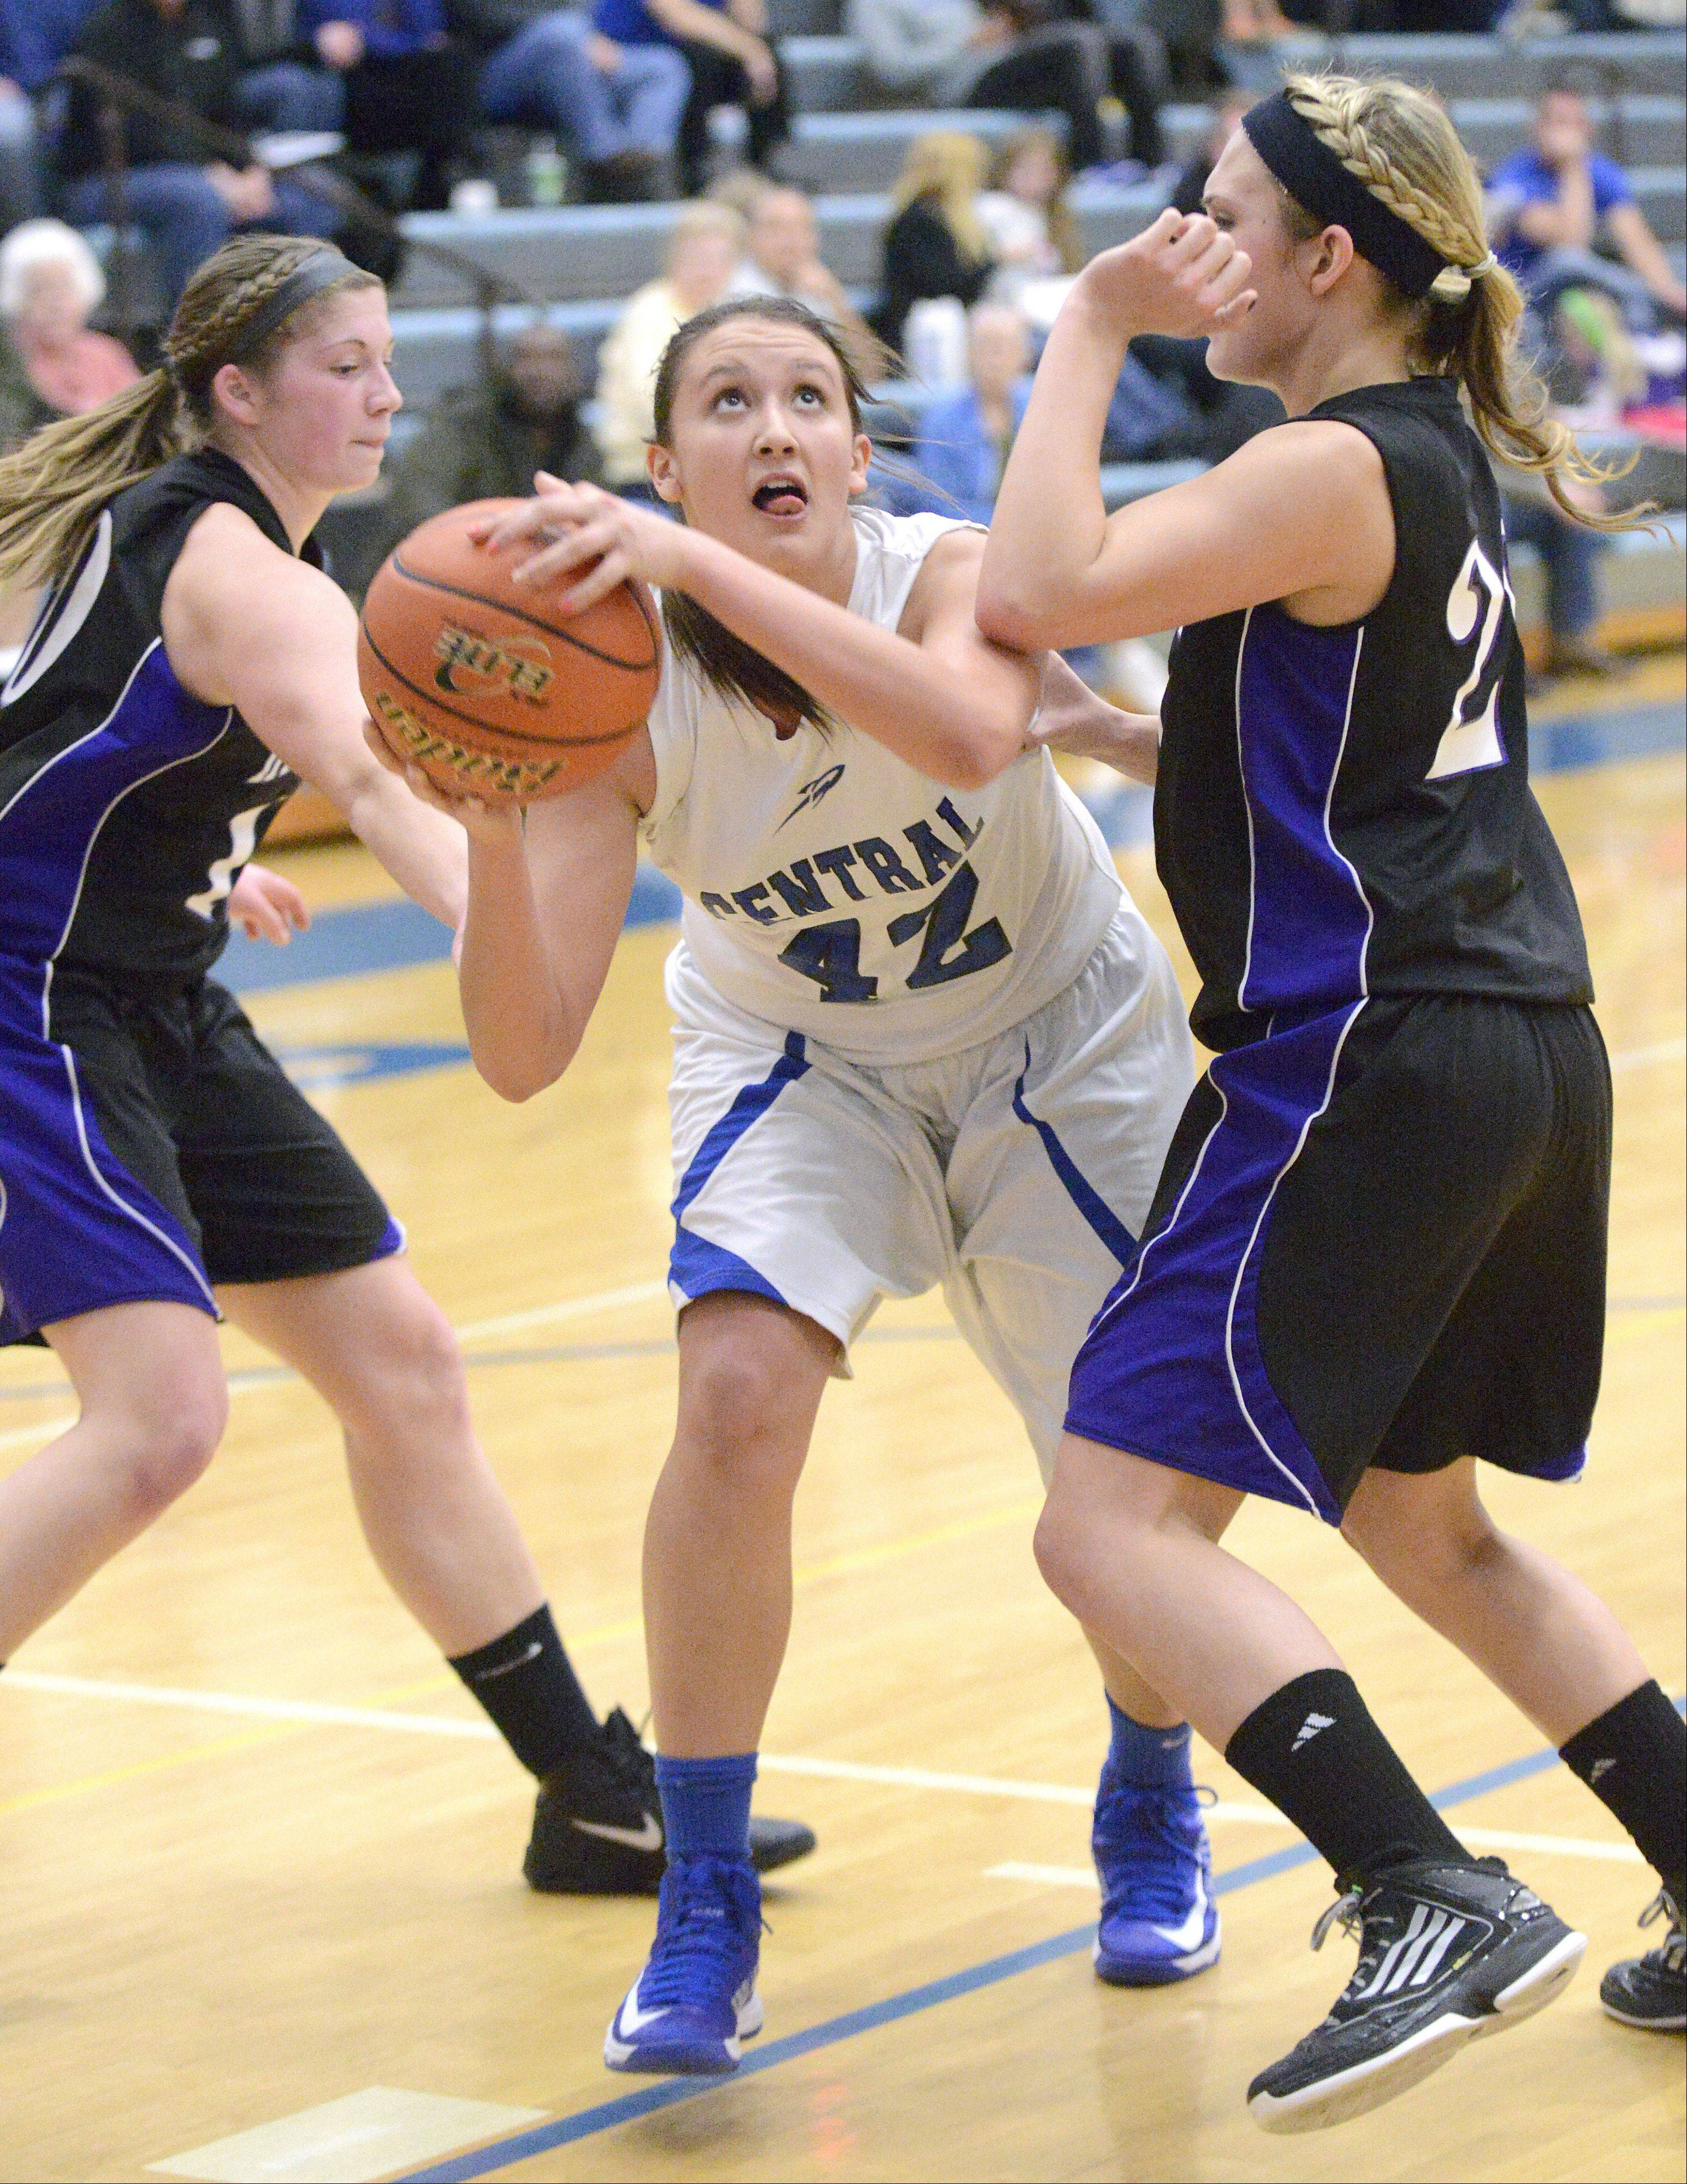 Burlington Central's Alison Colby takes a shot around a block by Hampshire's Lizzy Panzica in the second quarter.